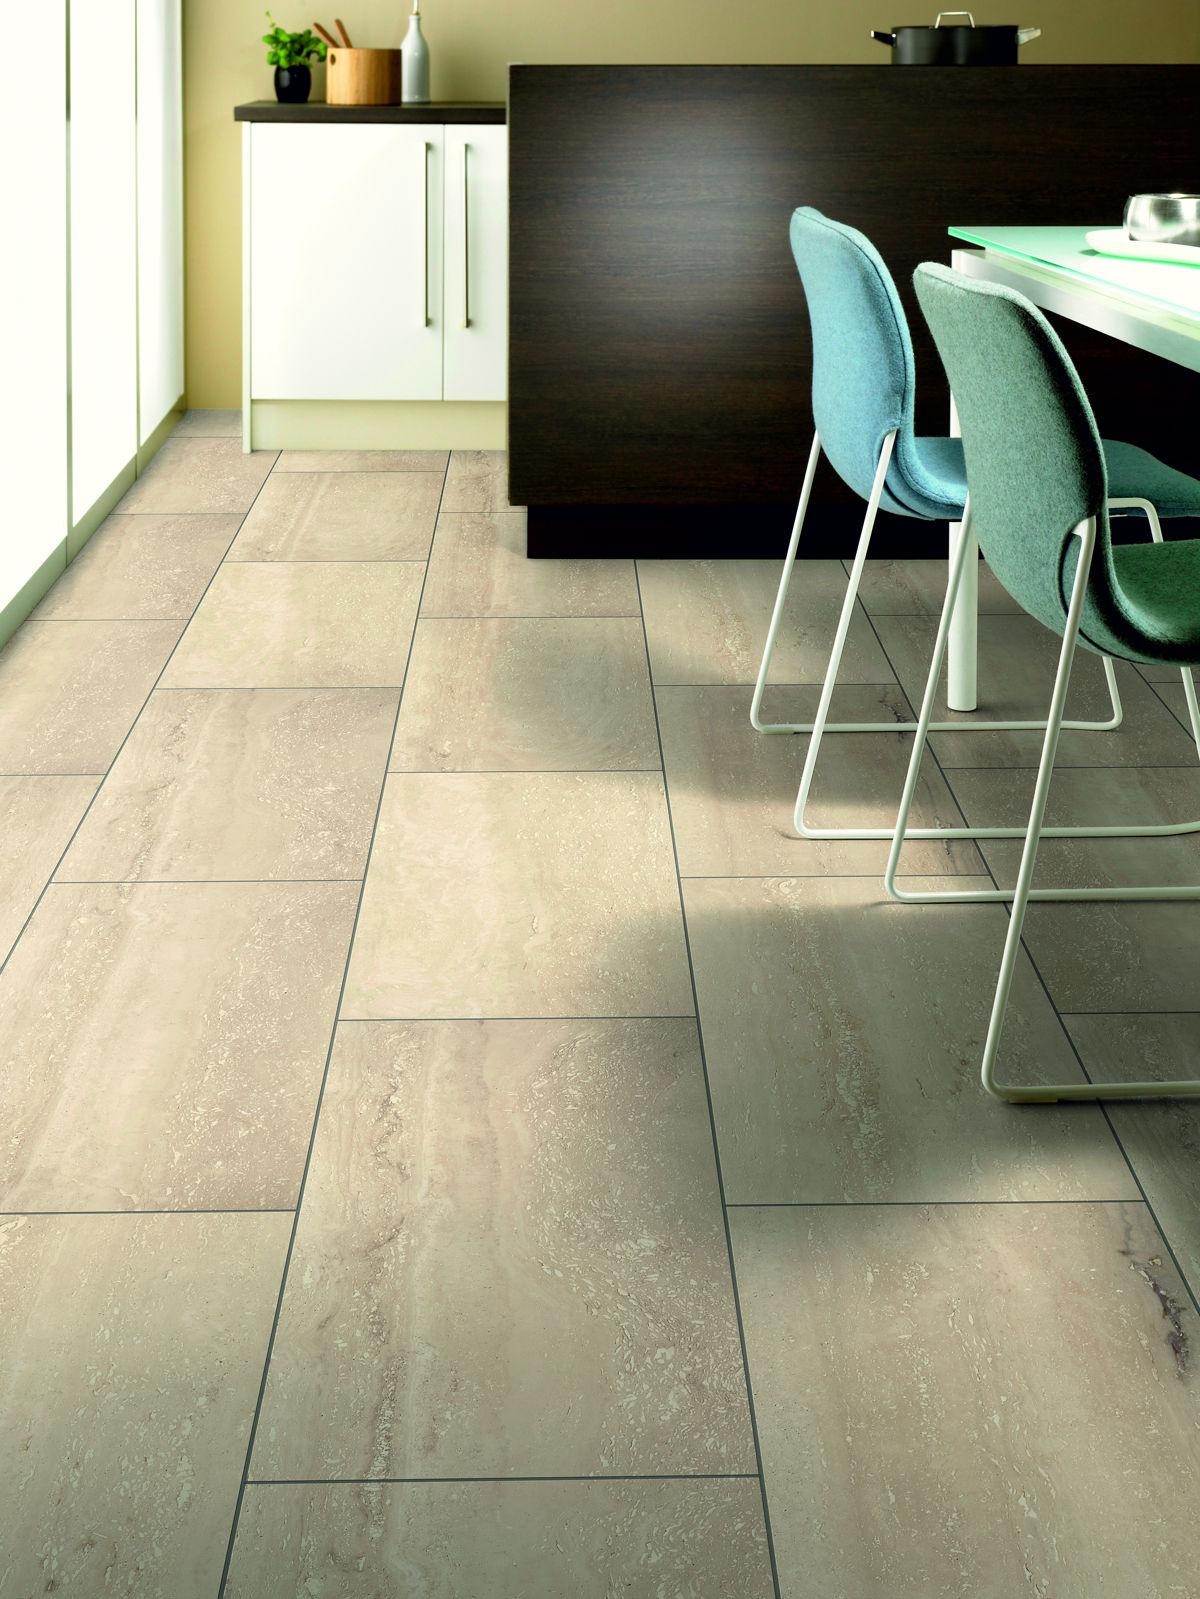 laminate floor tiles kronospan stone impression palatino travertine laminate tile and laminate  flooring combinations OAPJCOT